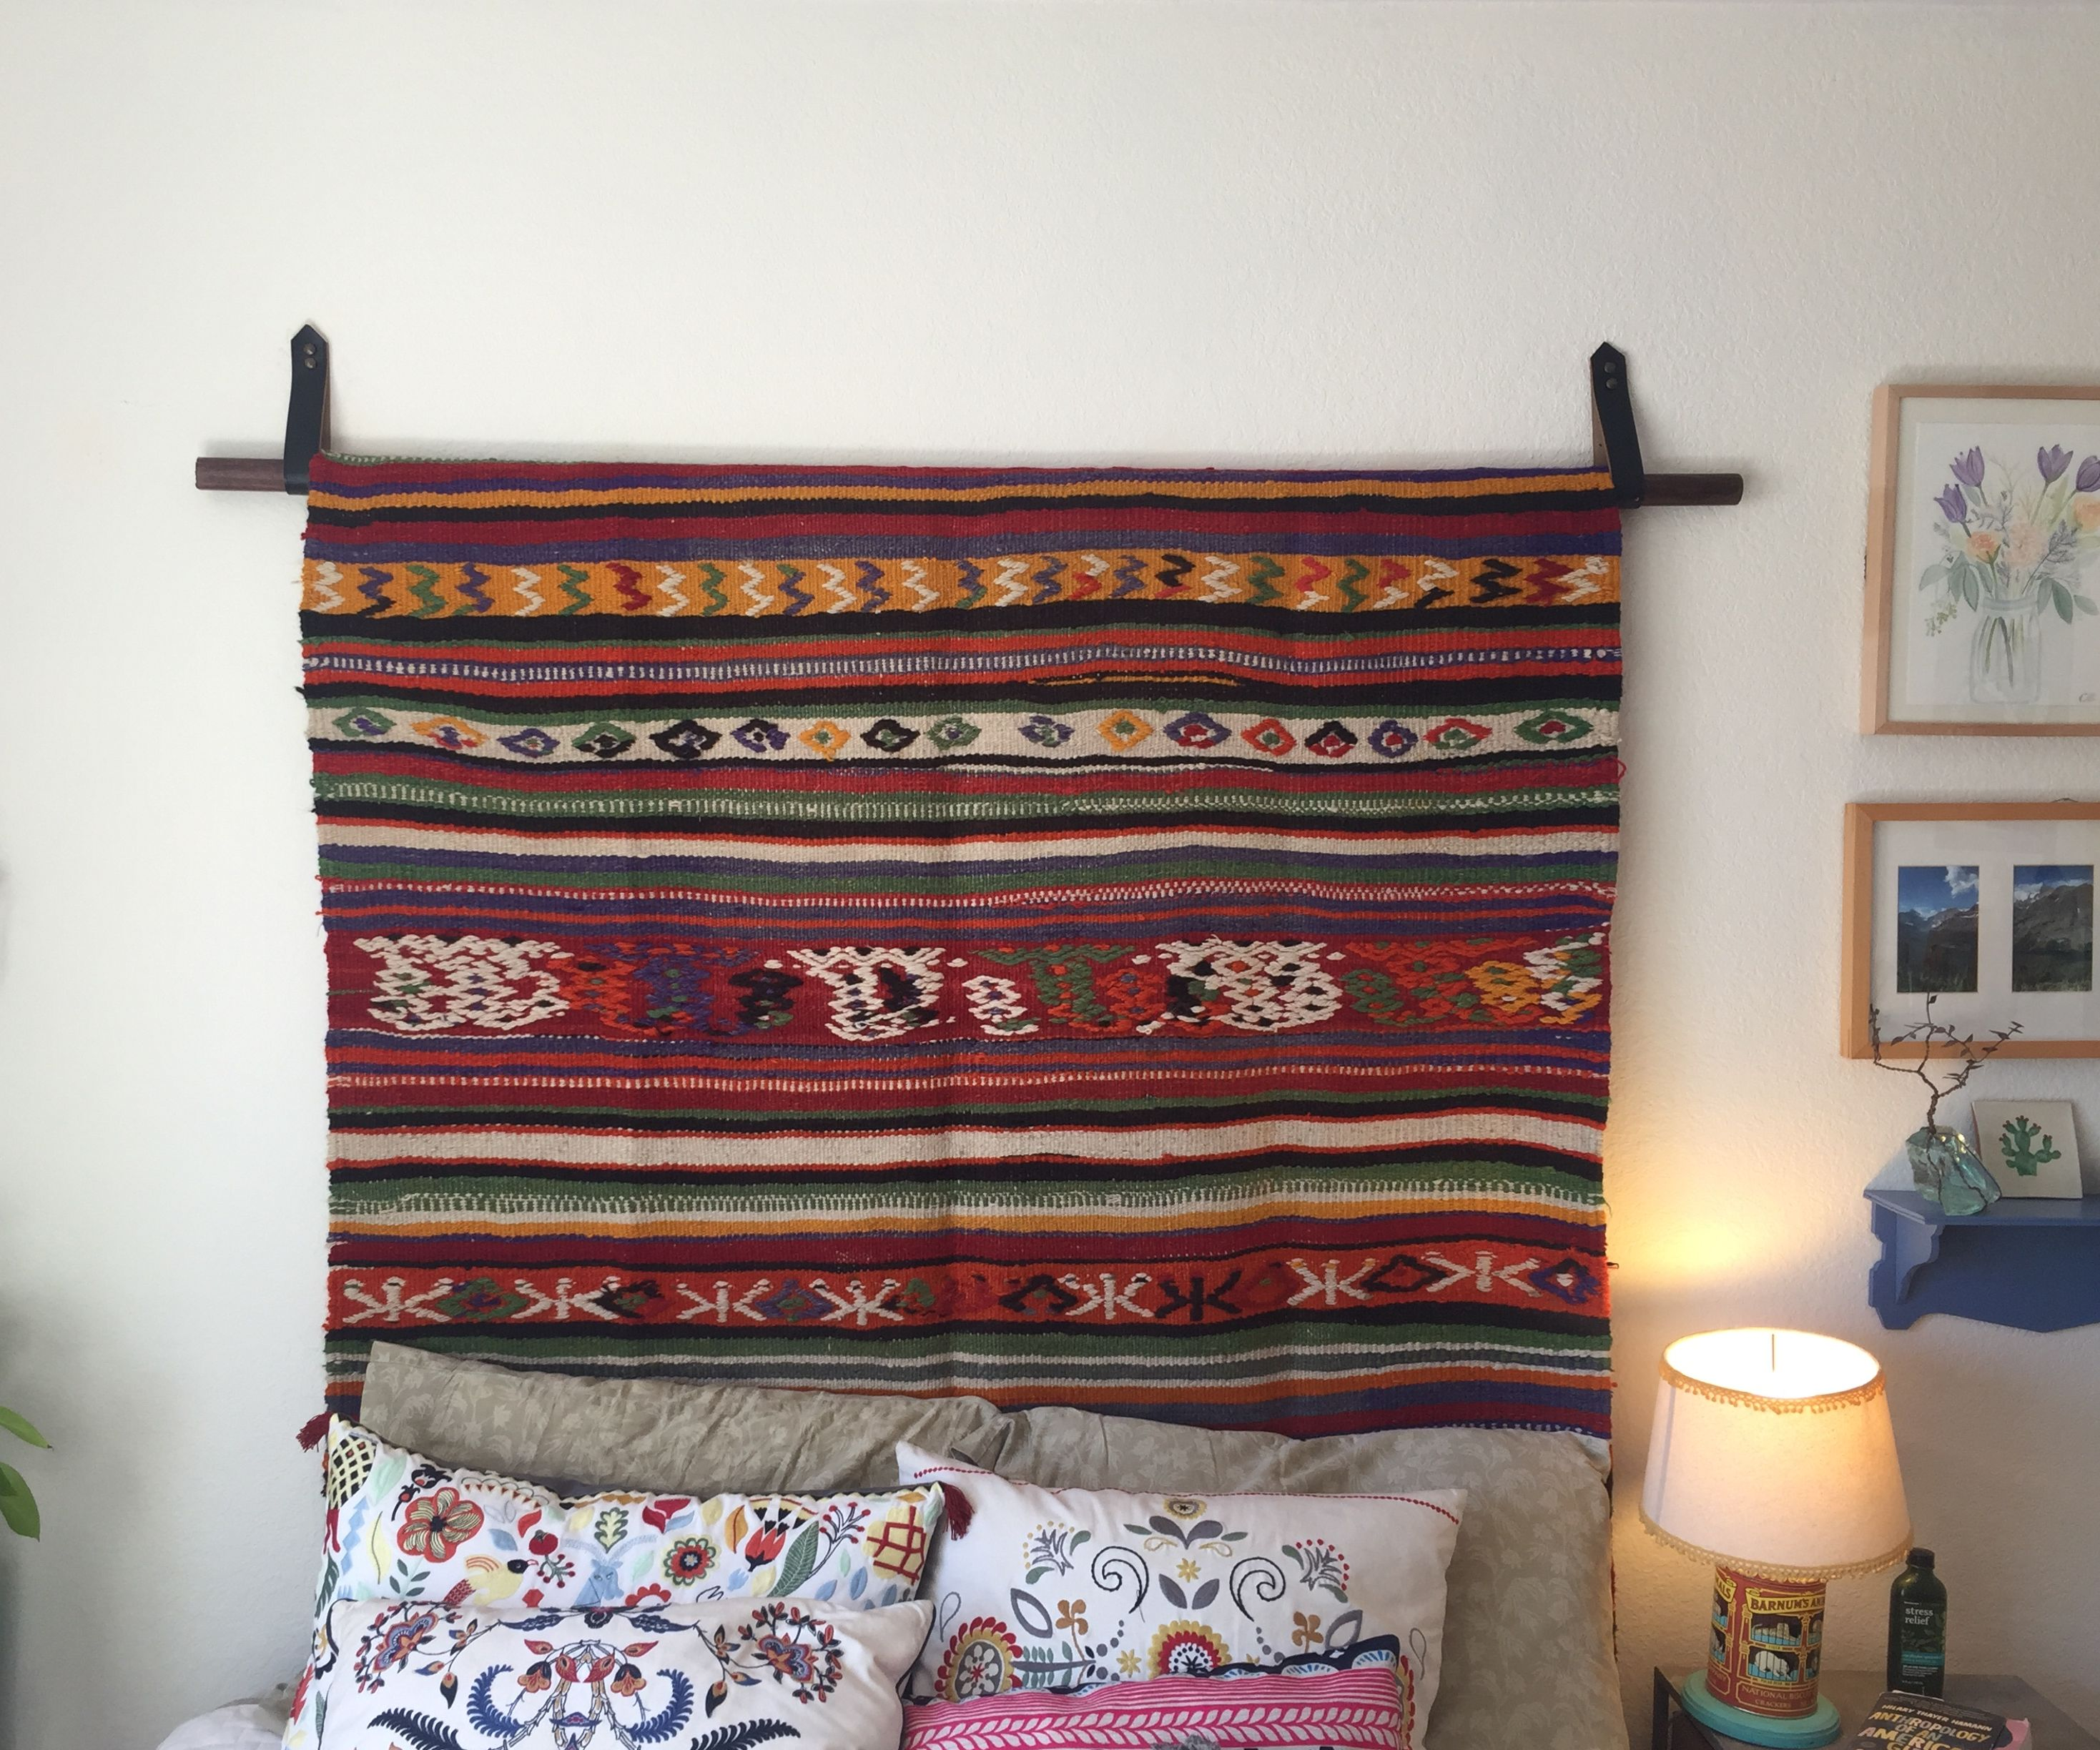 How to Hang a Rug with a Leather Belt